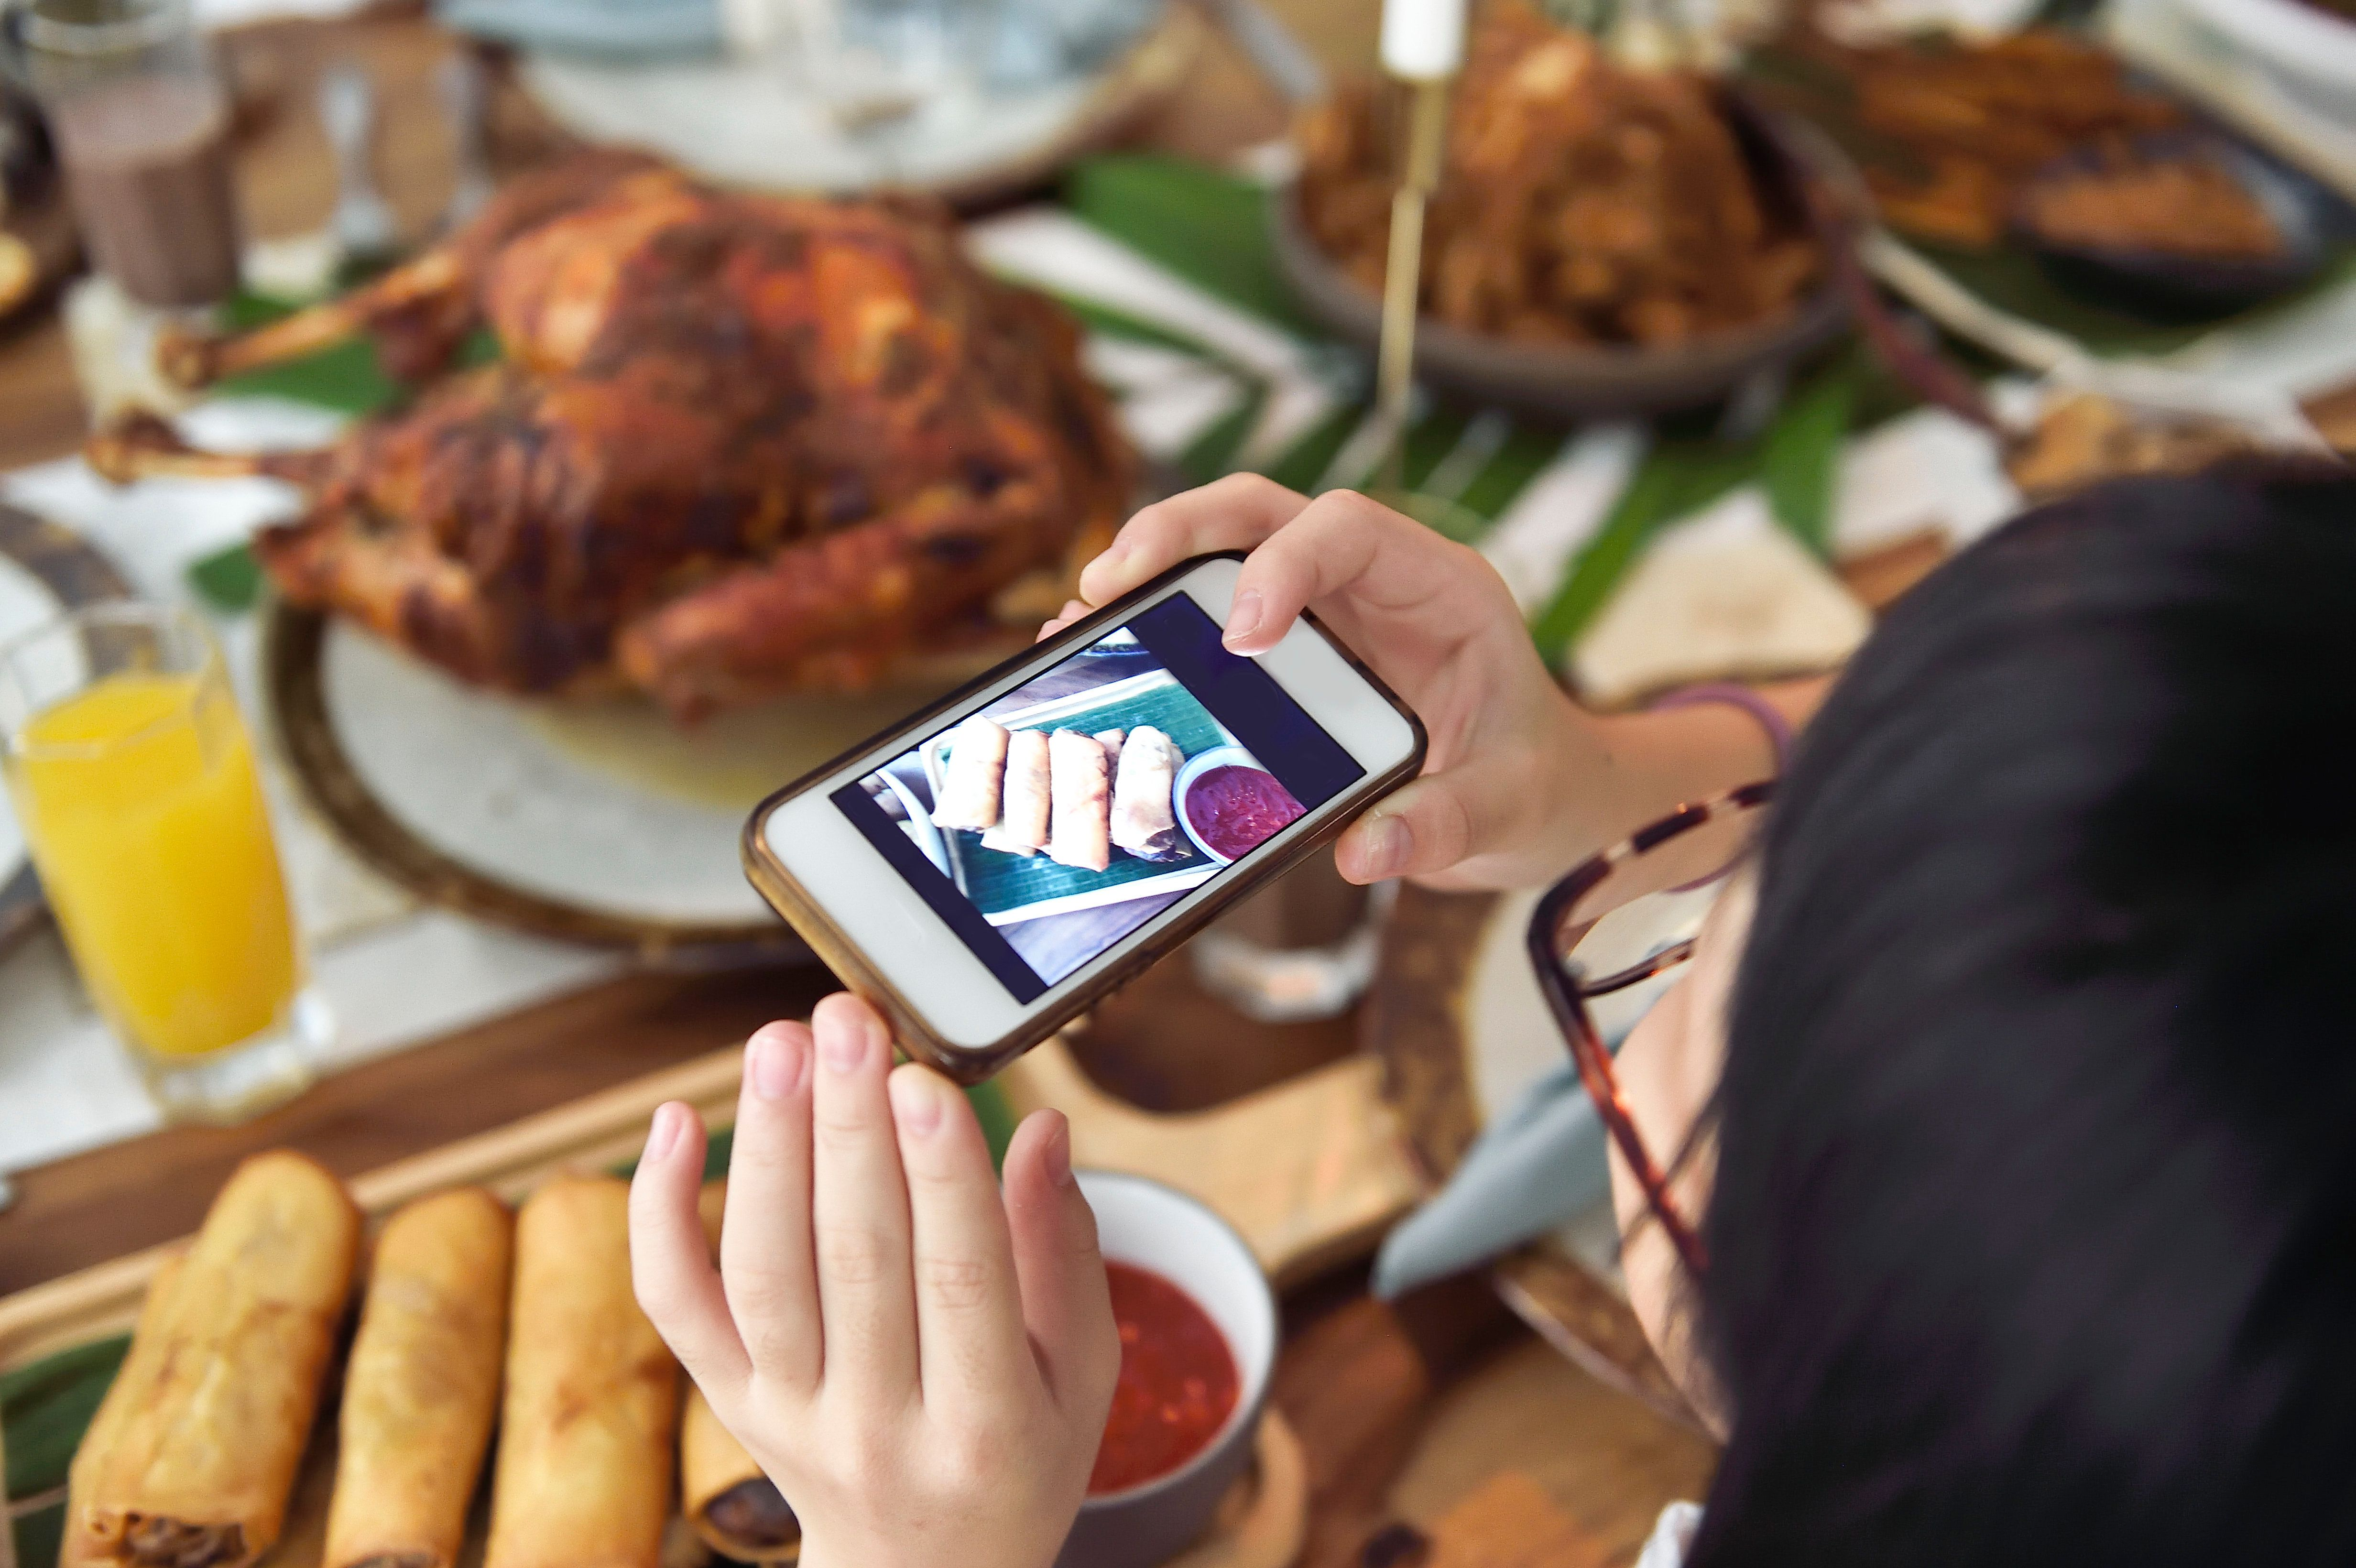 PHONE ADDICTION: More Than Half Of Us Can't Get Through Dinner Without Checking Our